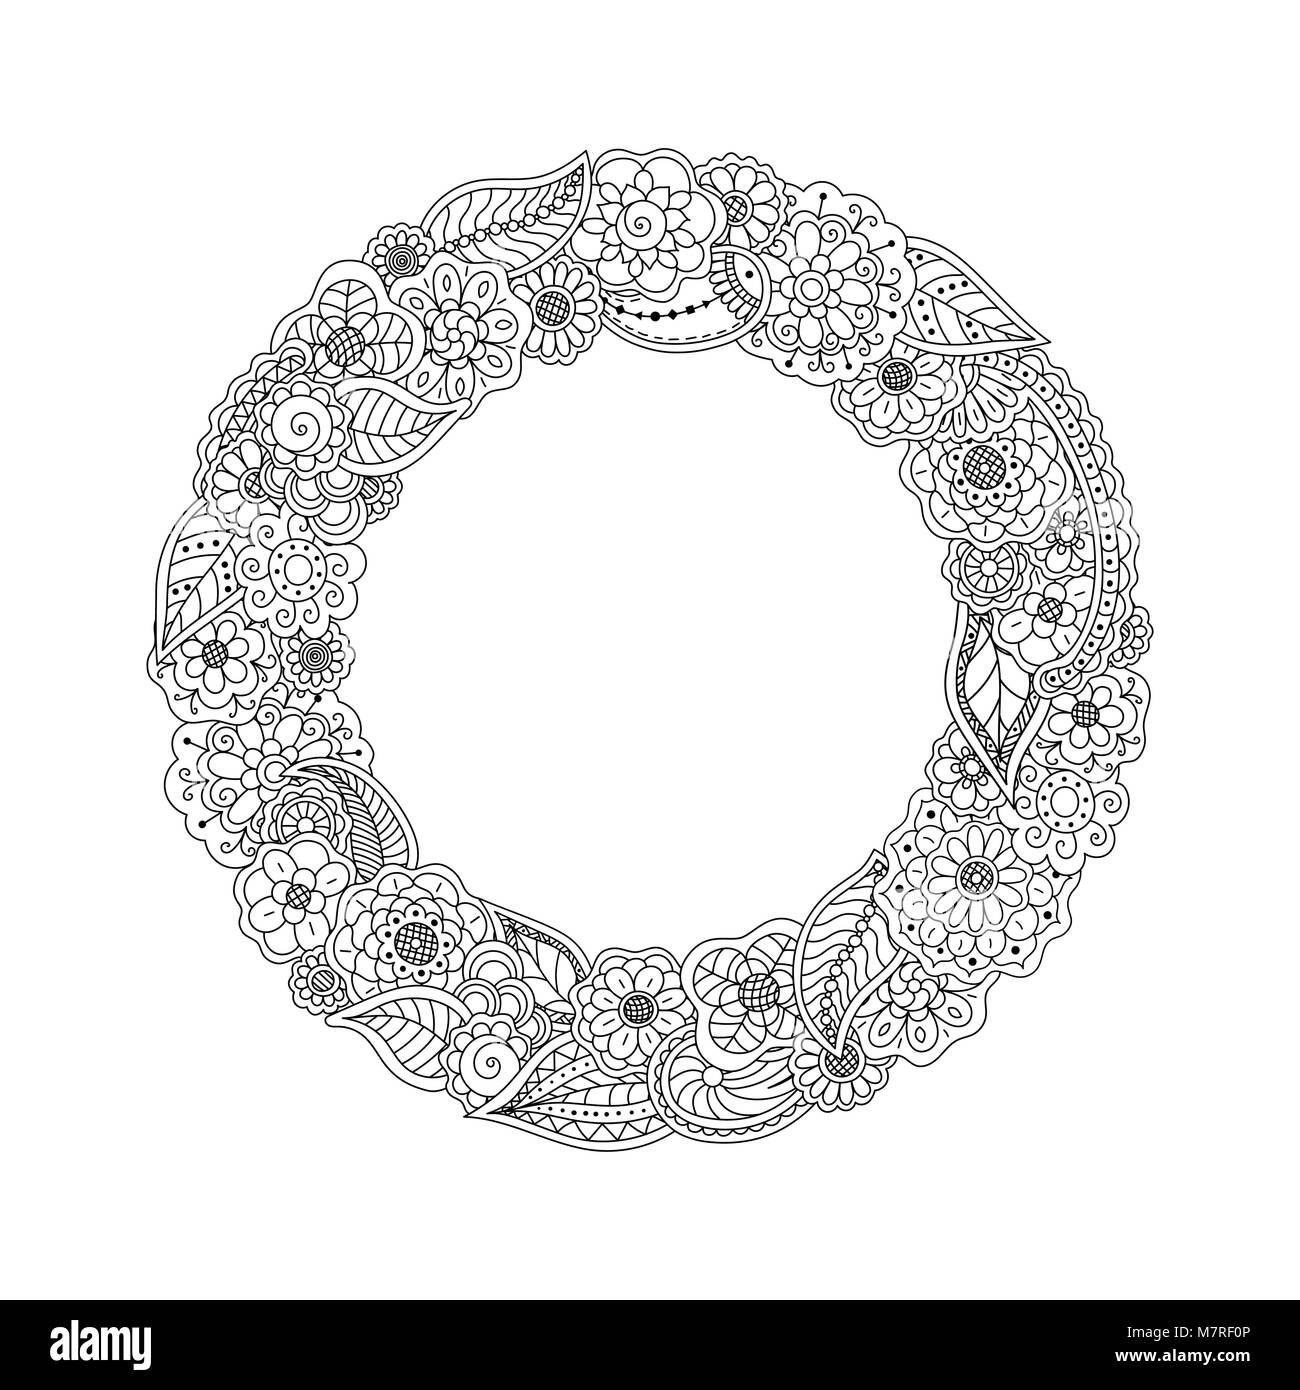 vector round circle frame of doodle flowers. Black and white floral ...